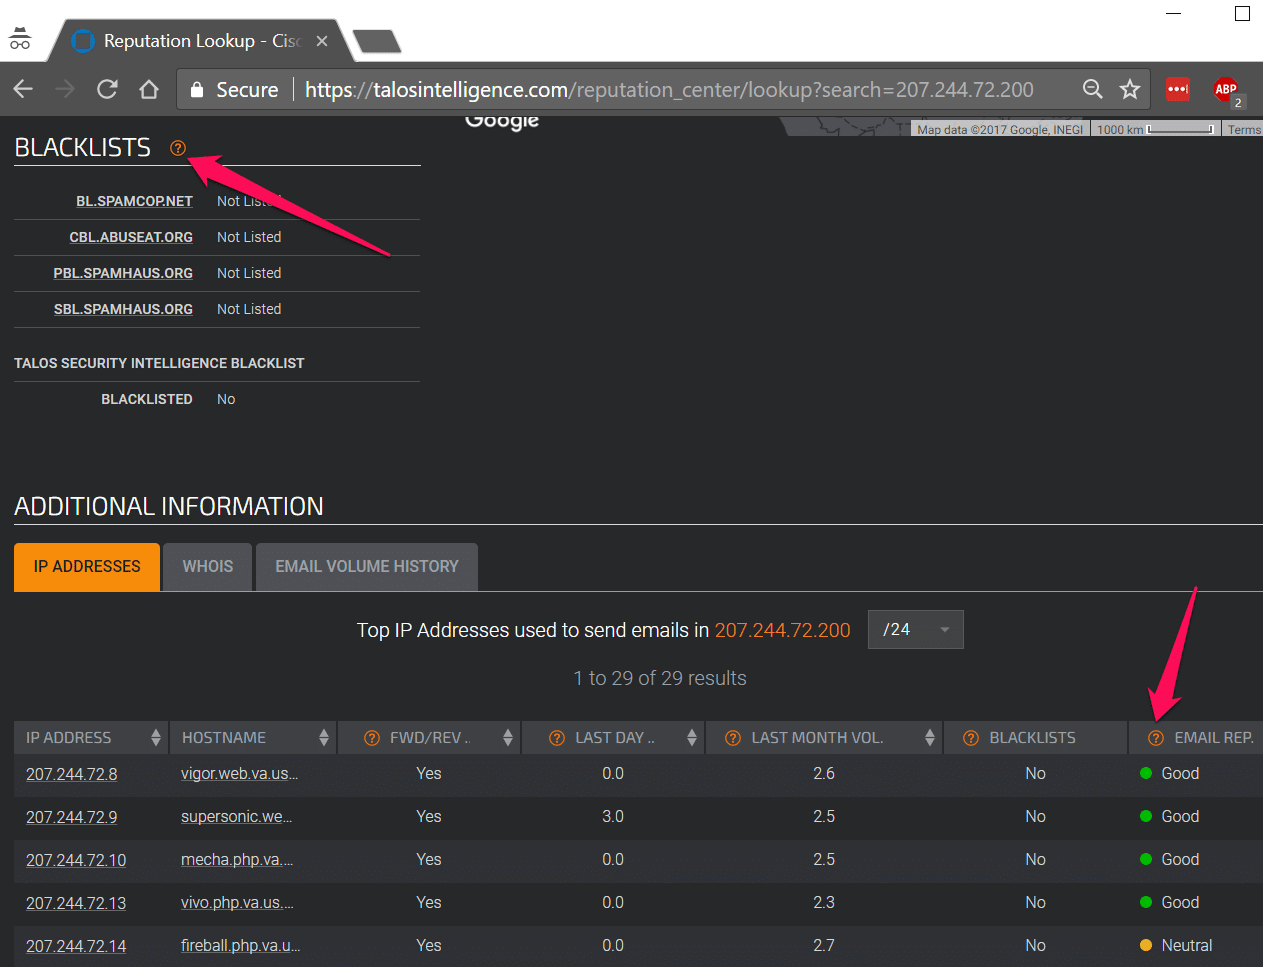 How to check the reputation of an IP address